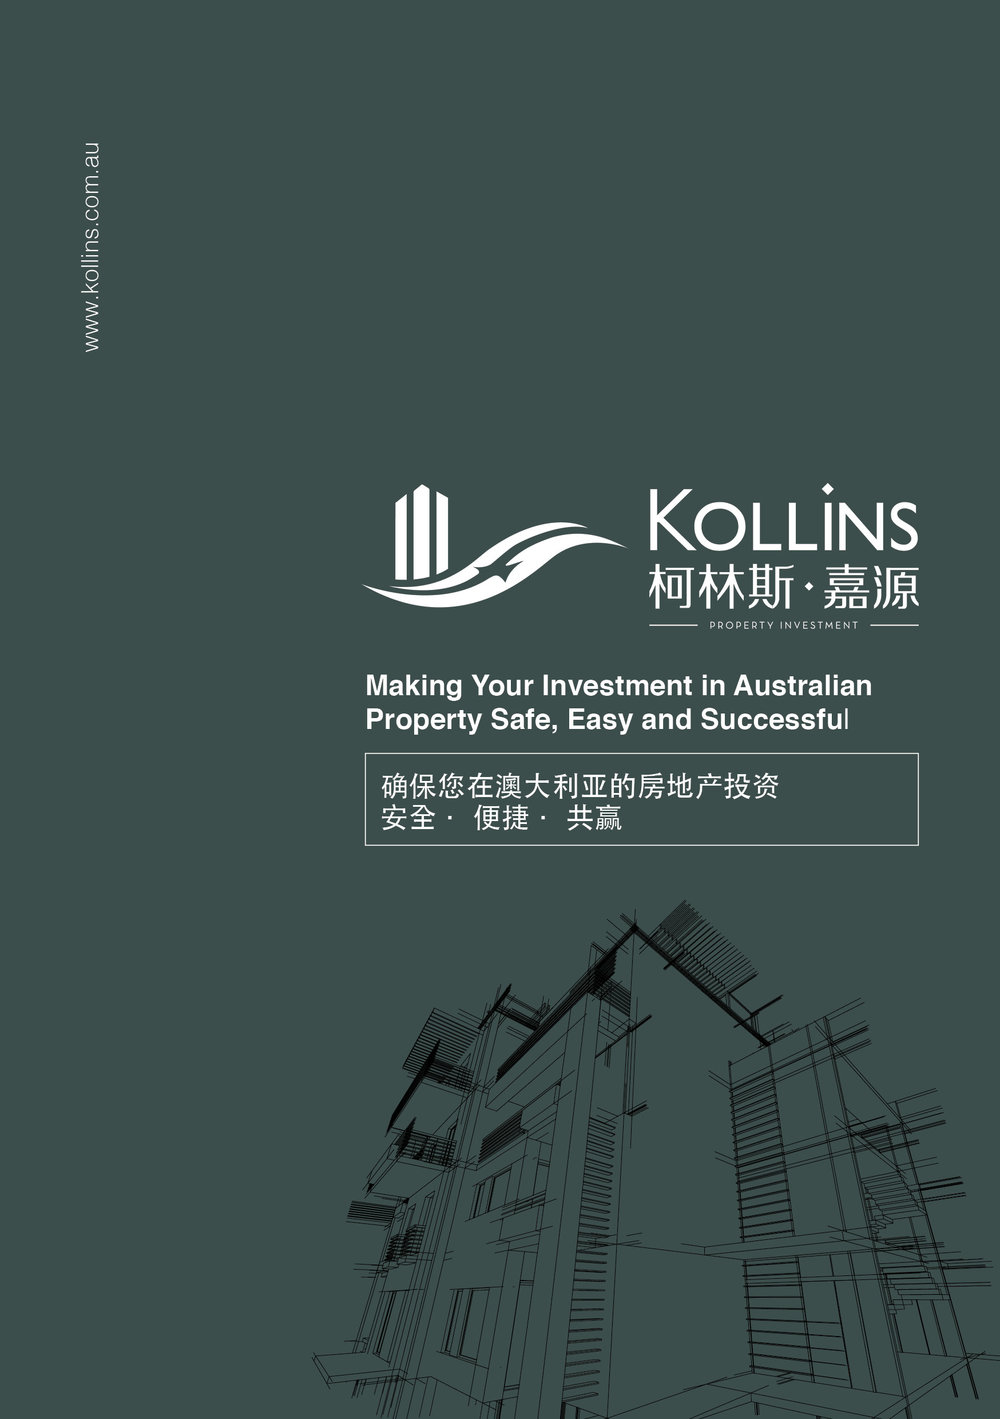 Kollins-About Us-FINAL-PDF-SPREAD.jpg